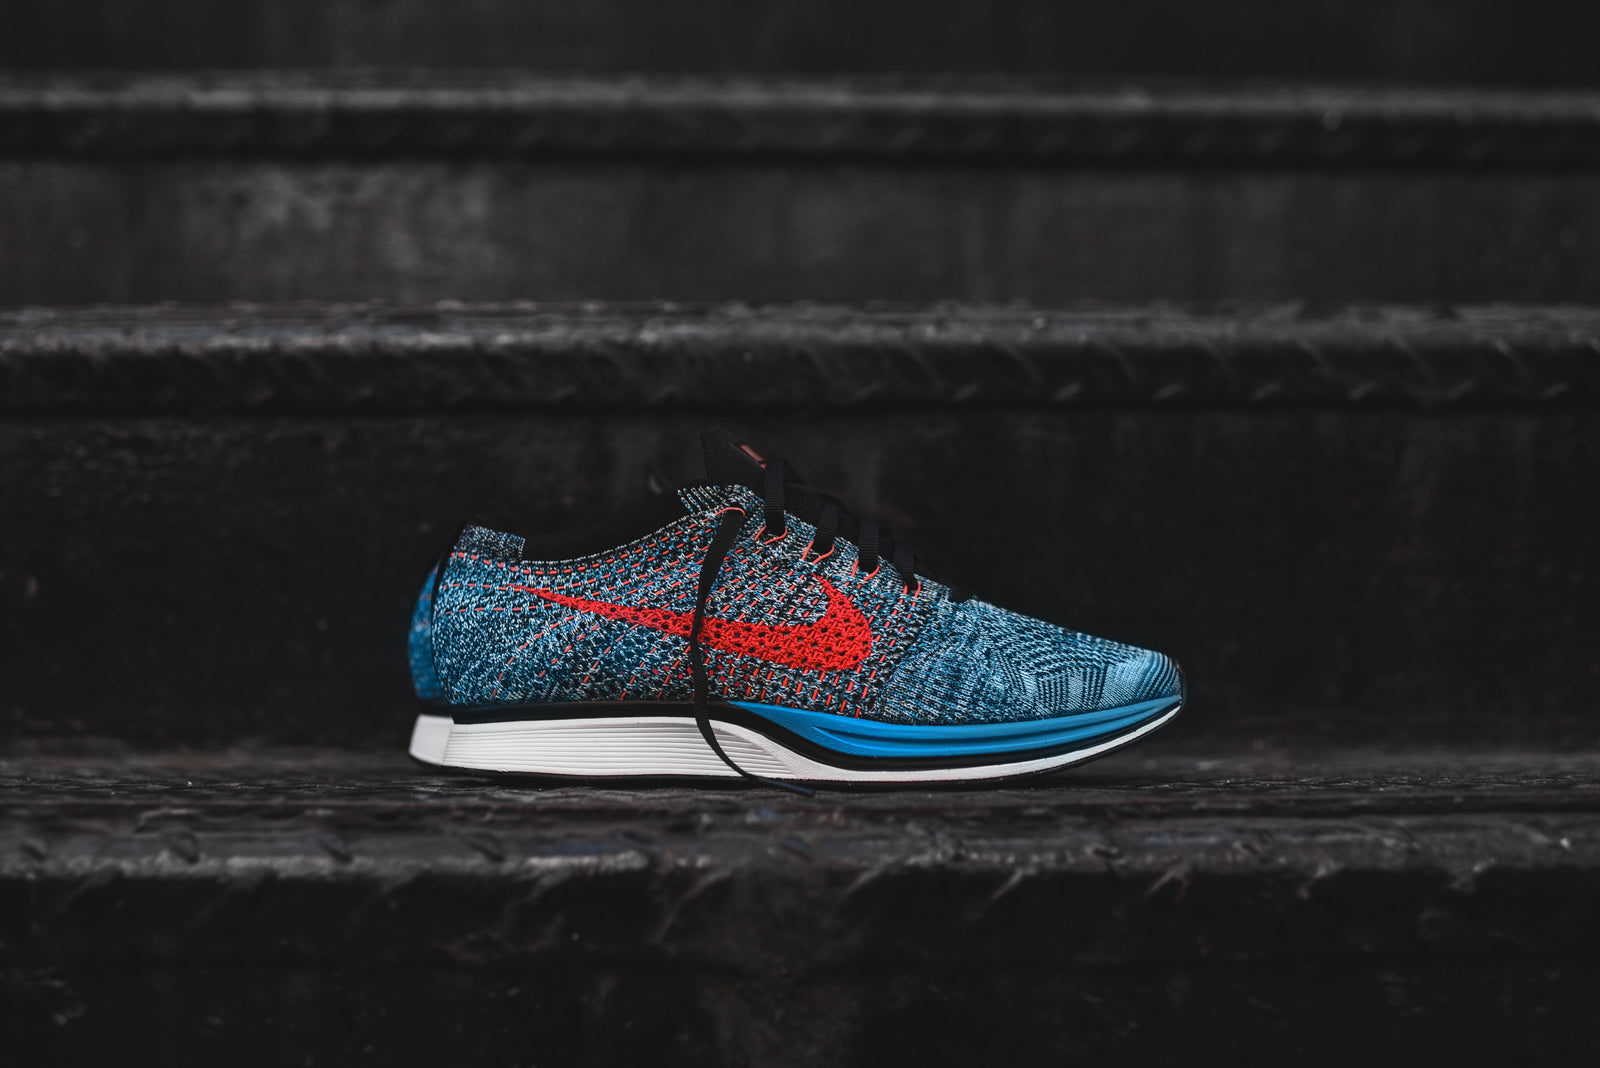 59ba8f4d3c7d Nike Flyknit Racer - Neo Turquoise   Bright Crimson. March 25